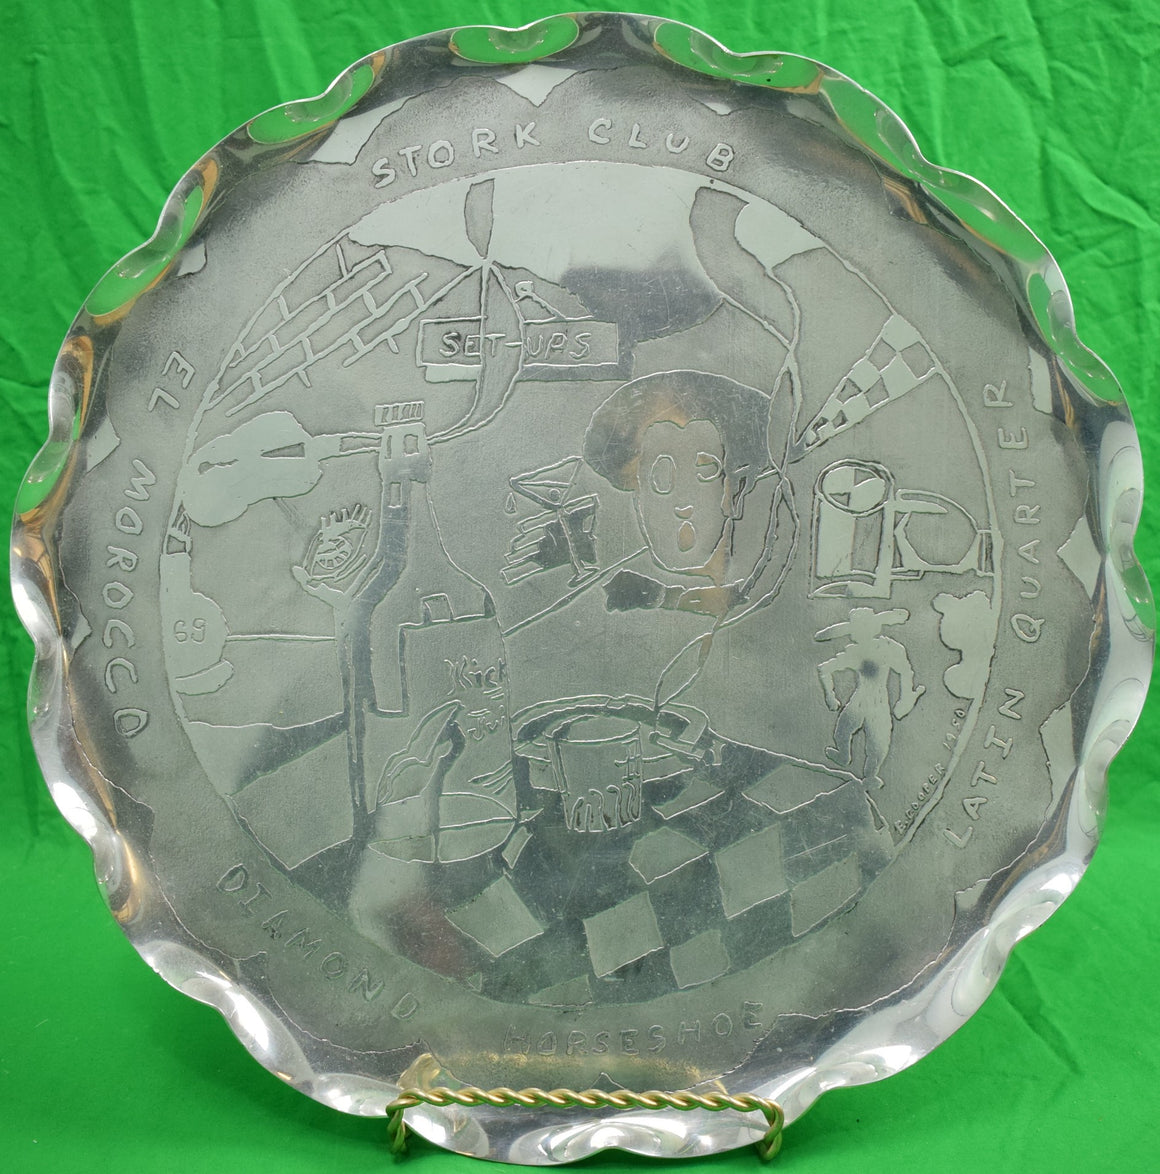 El Morocco/ Stork Club Aluminum Scallop-Edge c.1950 Cocktail Tray